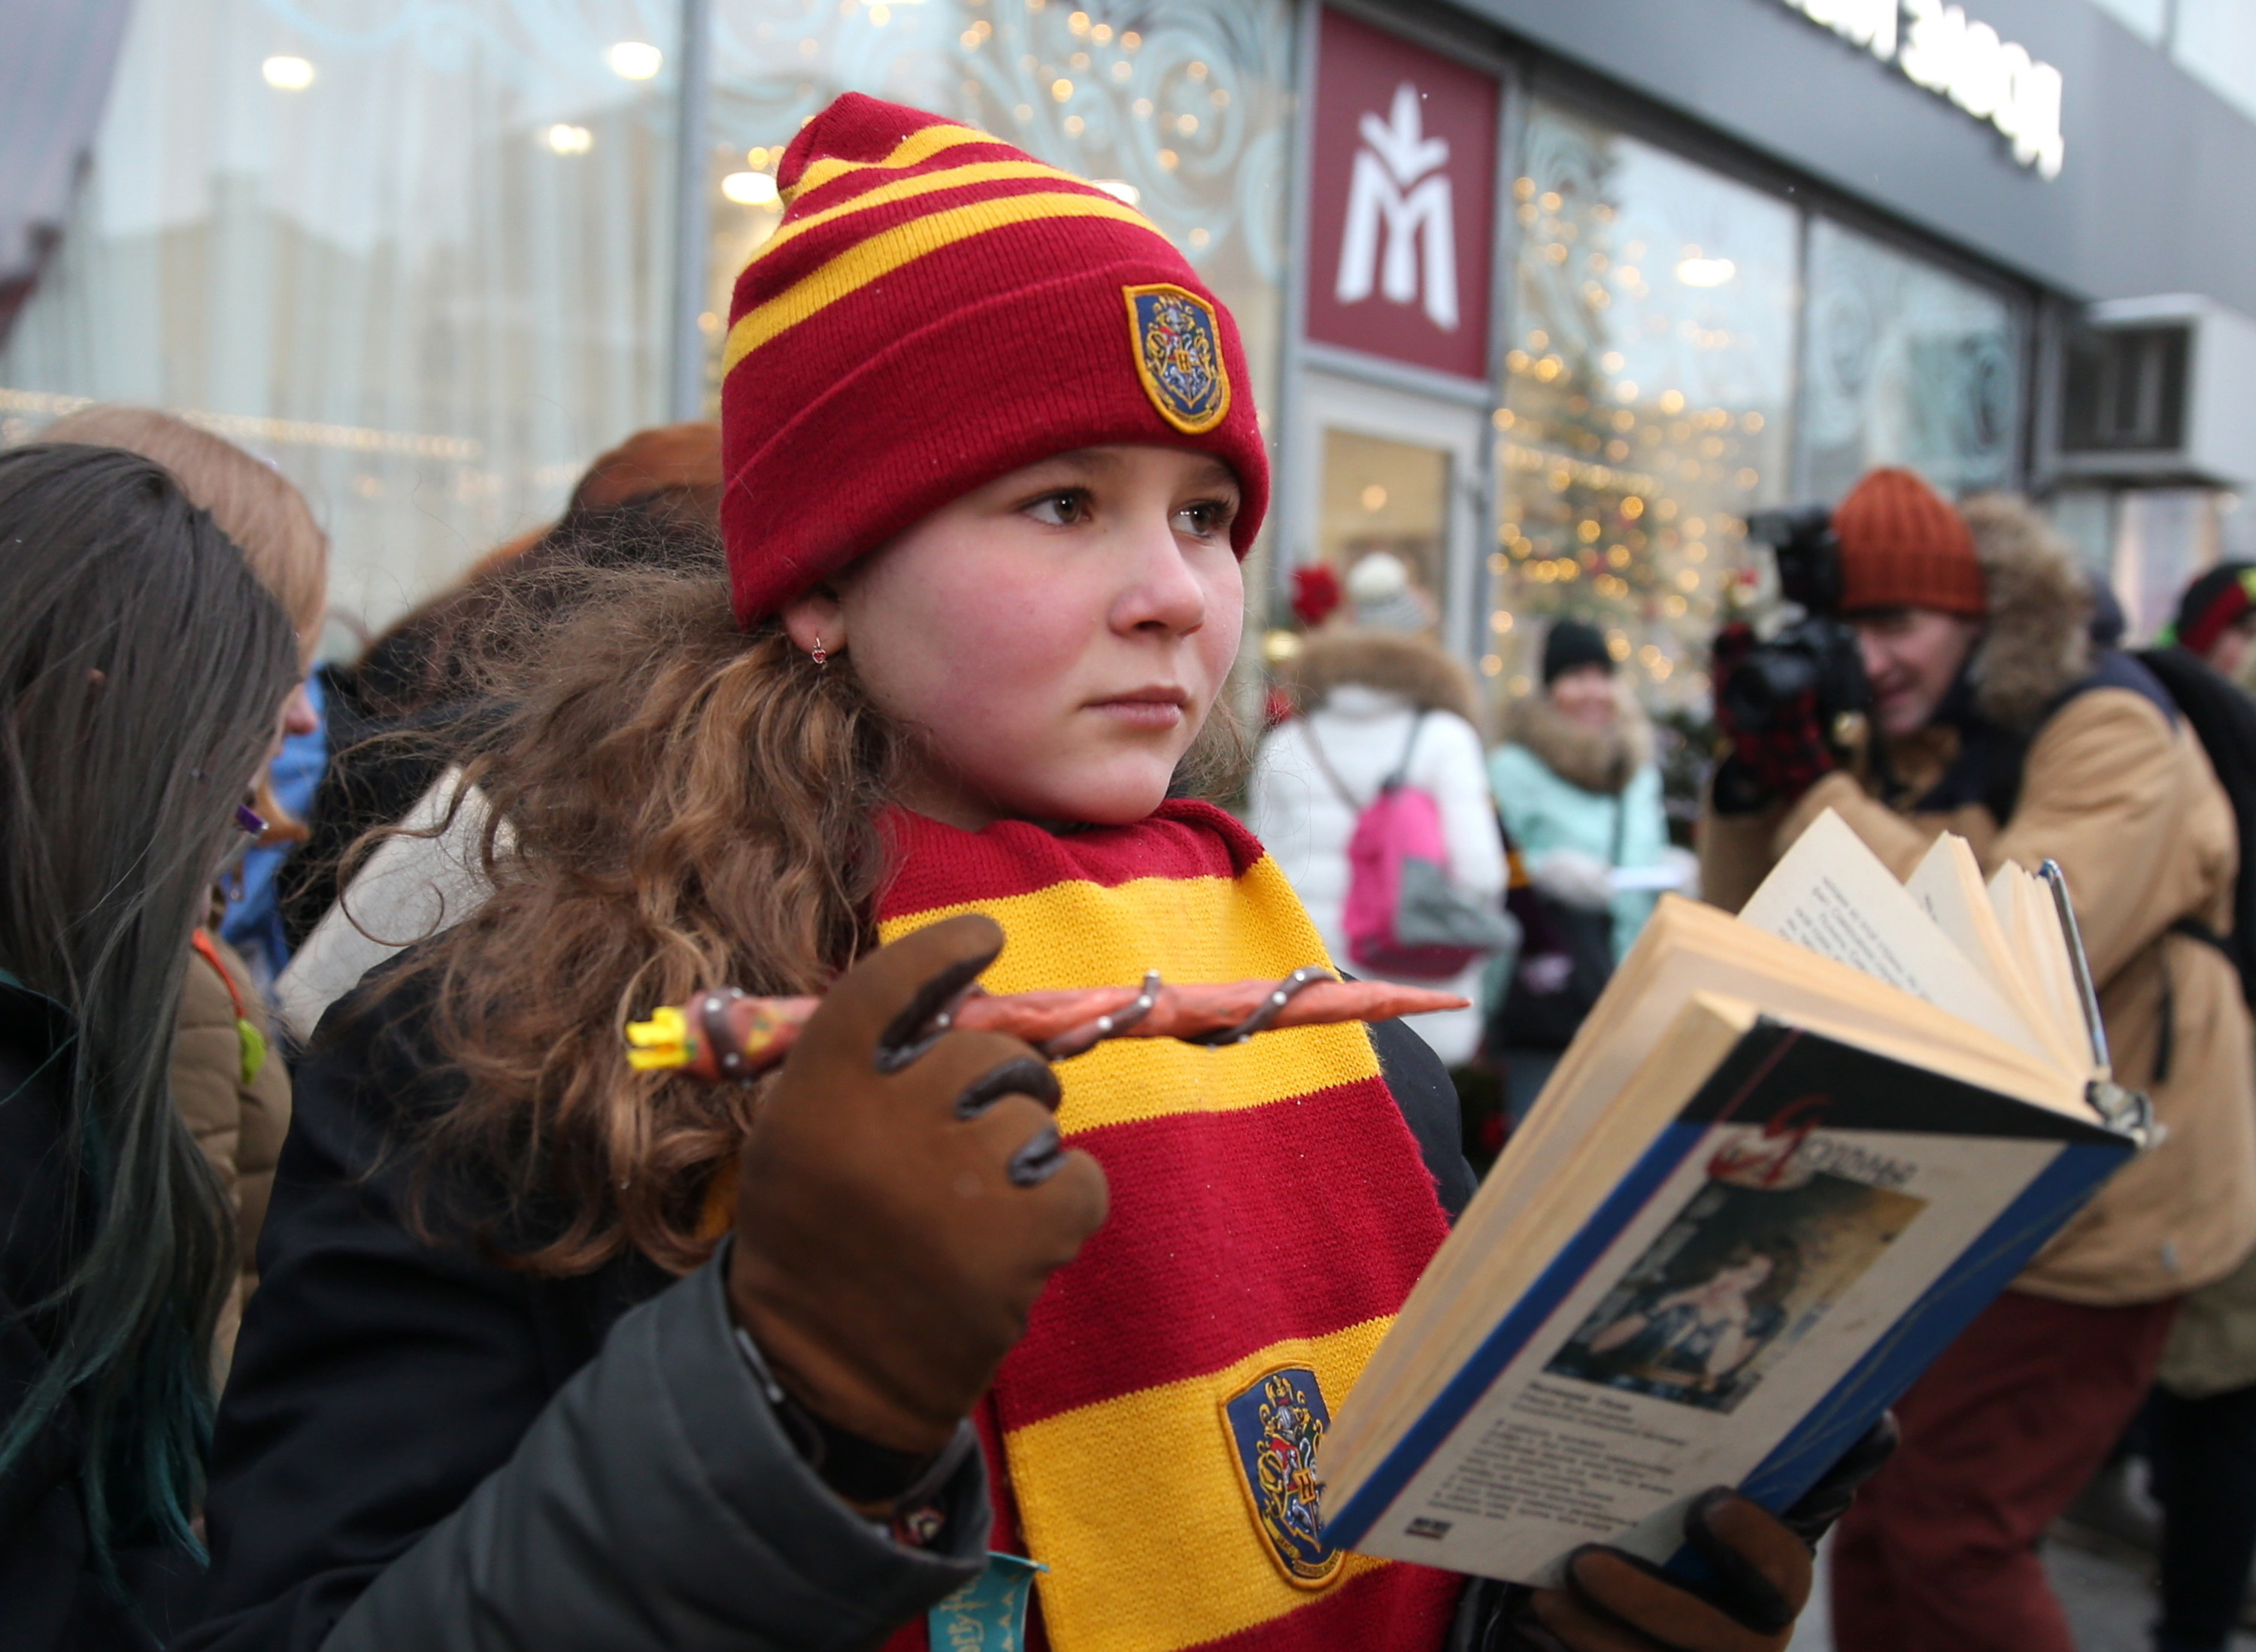 A child wearing a Gryffindor knit cap and scarf and holding a wand